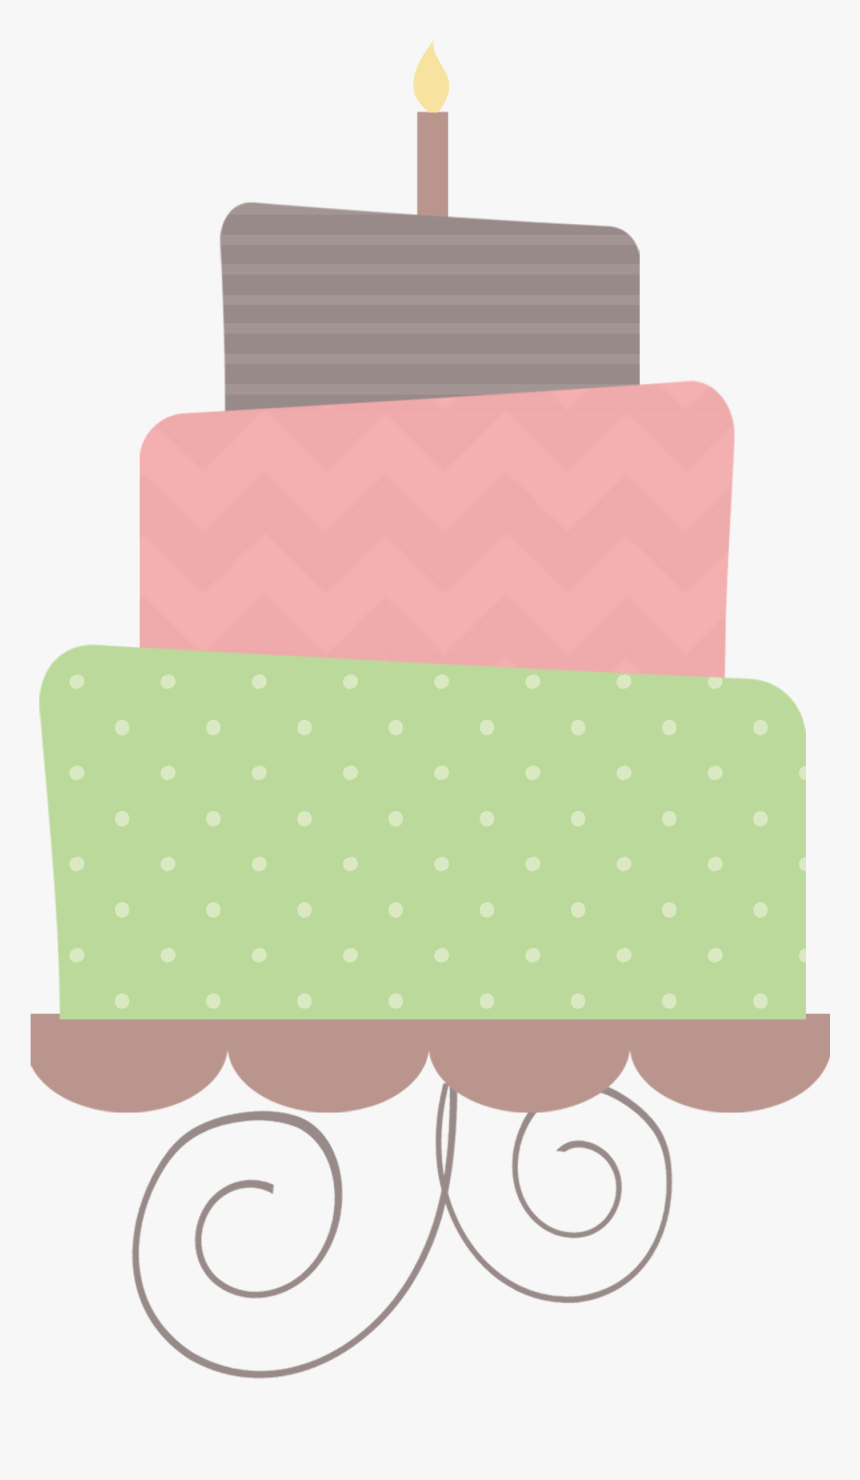 Download For Free Cake Png In High Resolution Birthday Cake Clipart Printable Transparent Png Transparent Png Image Pngitem